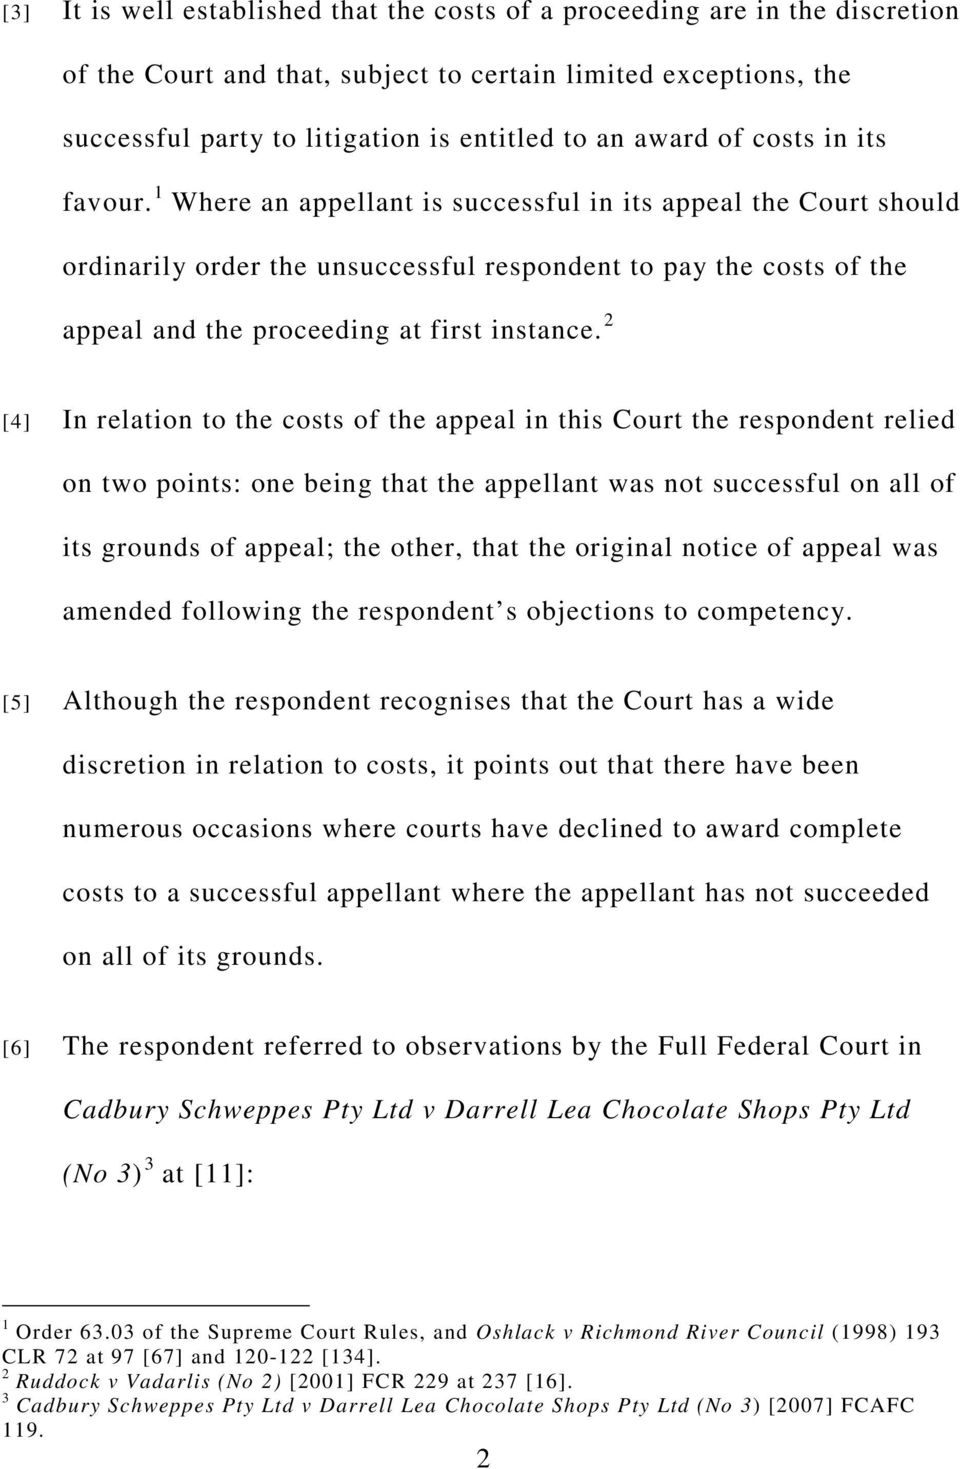 1 Where an appellant is successful in its appeal the Court should ordinarily order the unsuccessful respondent to pay the costs of the appeal and the proceeding at first instance.